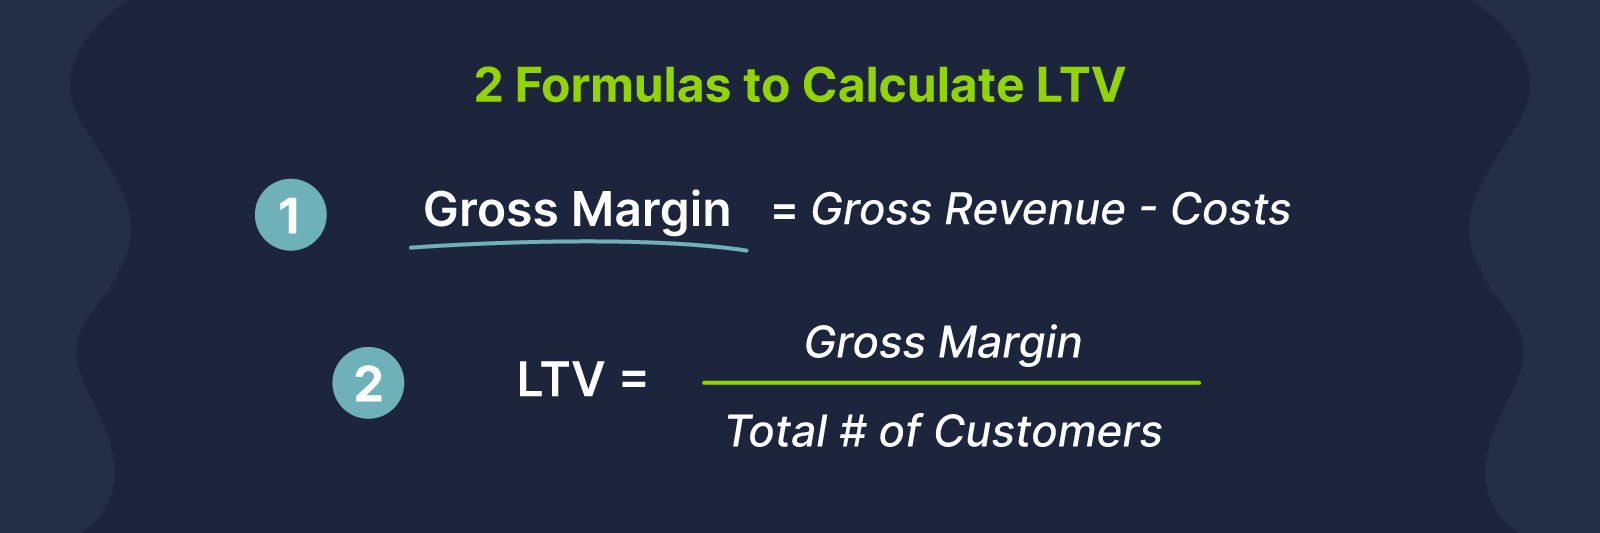 how to calculate LTV - LTV formulas (gross margin and LTV)